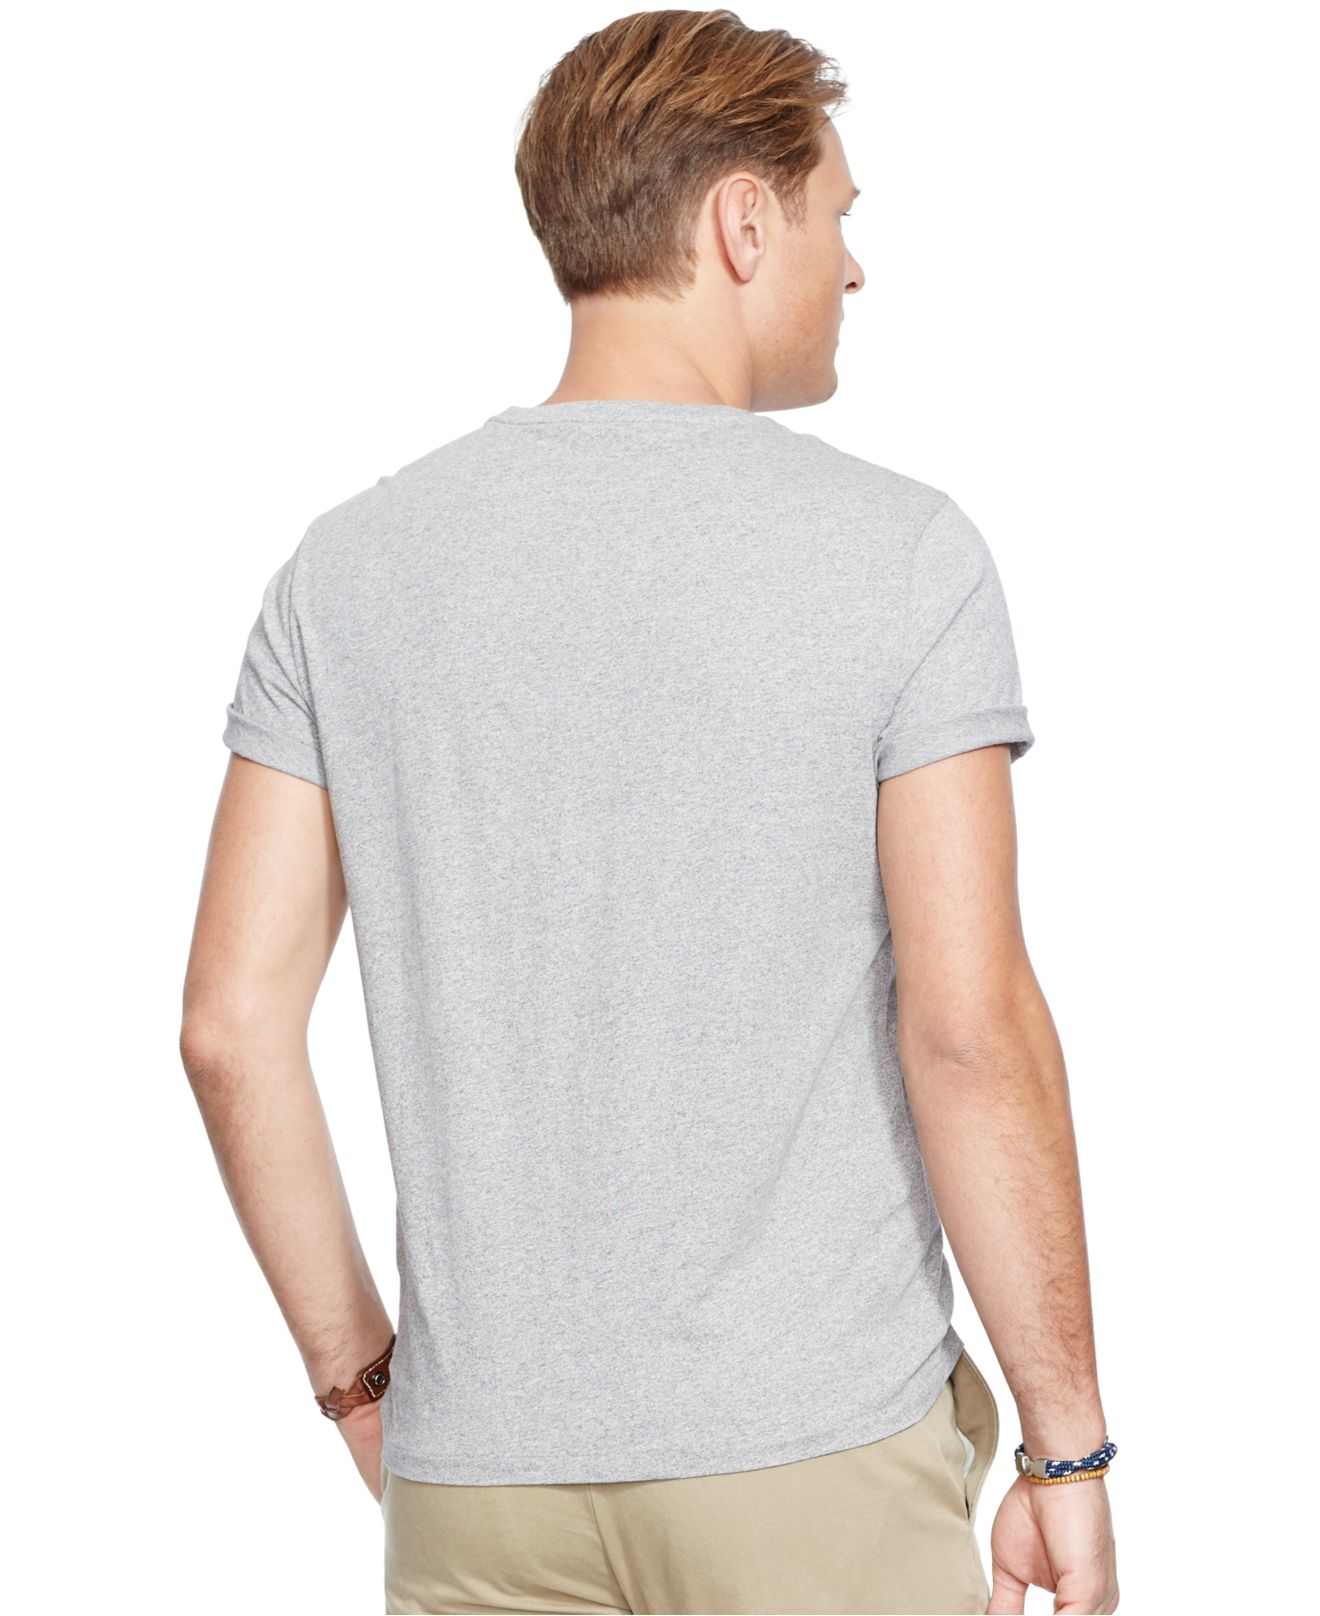 Polo ralph lauren big and tall athletic club t shirt in for Big and tall athletic shirts